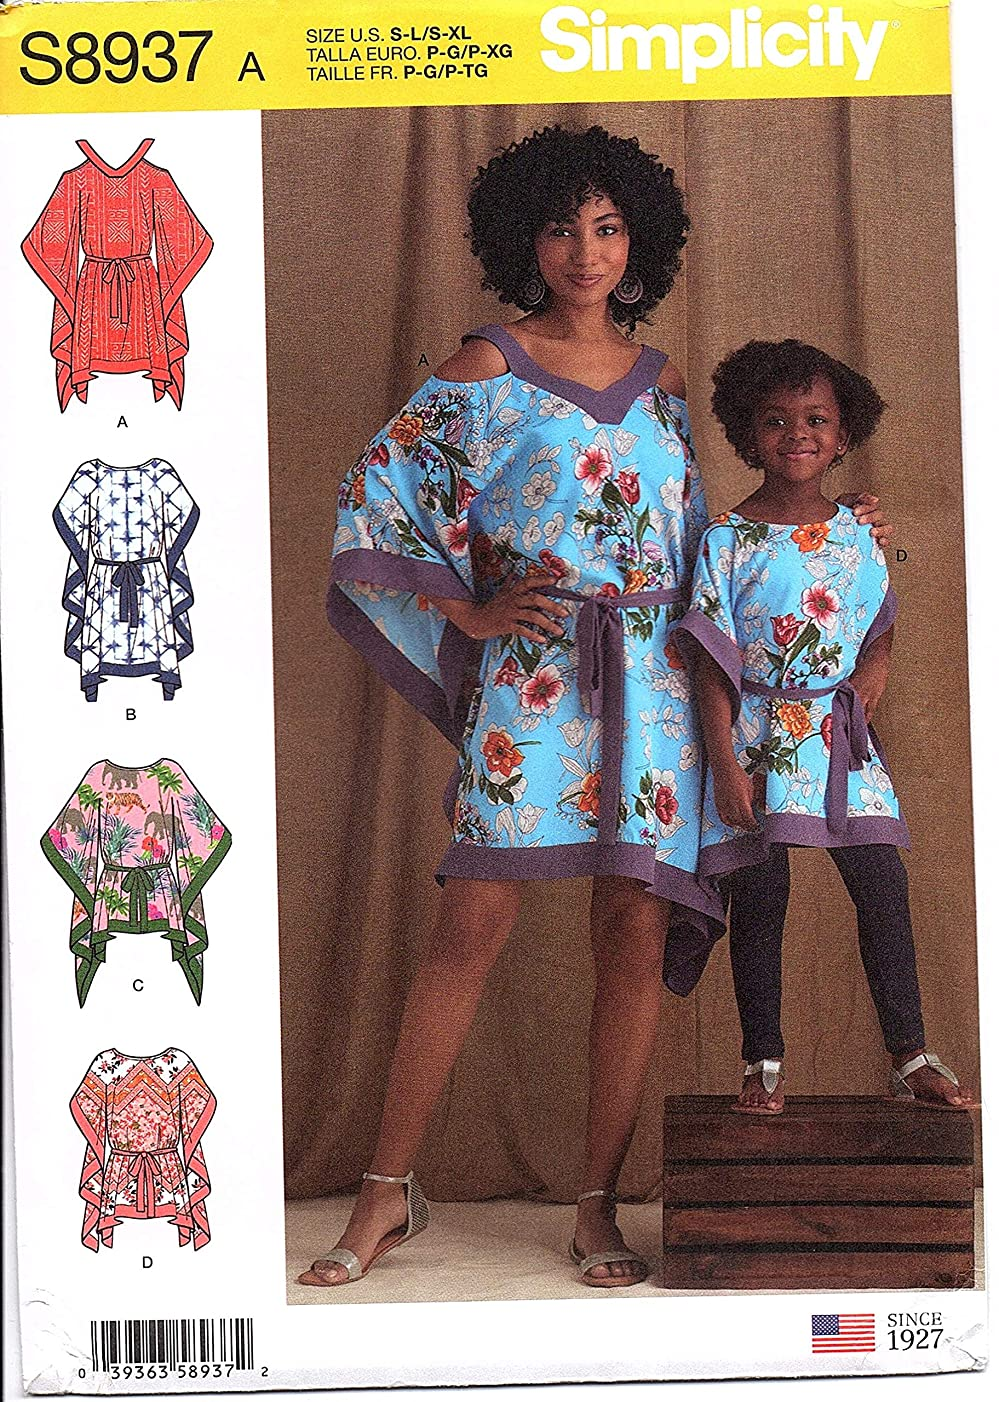 Simplicity Sewing Pattern S8937A - Use to Make - Sizes S-L Child's and S-XL Misses' Caftans in Two Lengths